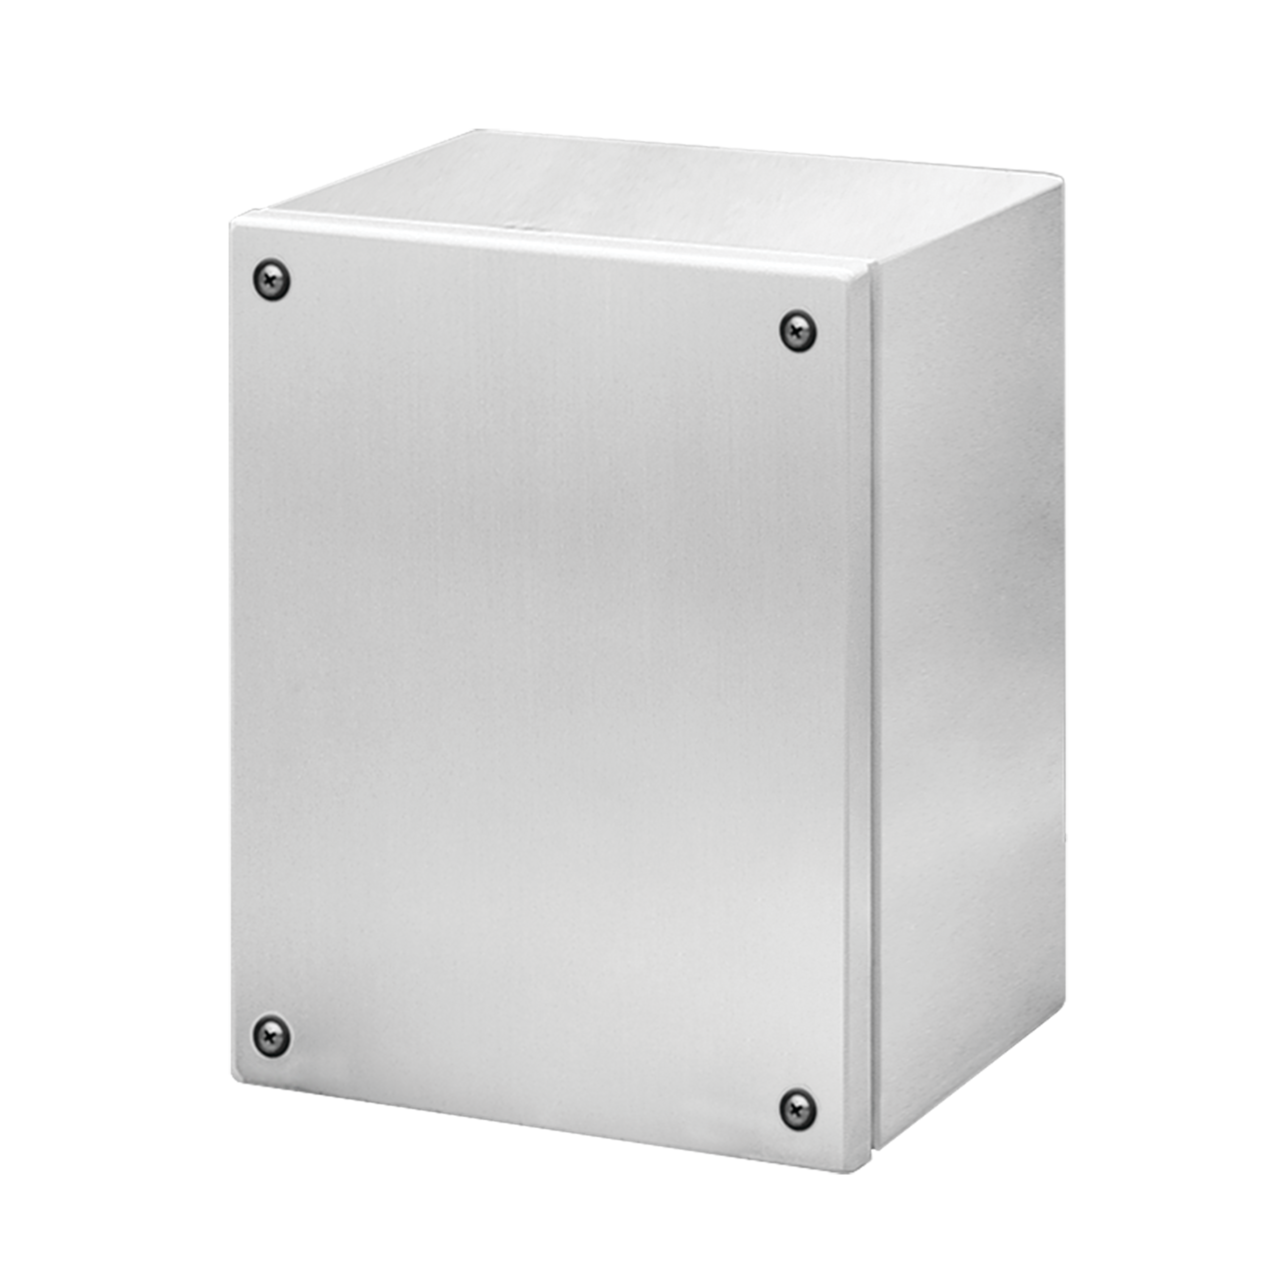 GL66 Stainless Steel Screw Cover Wall-Mount Enclosure